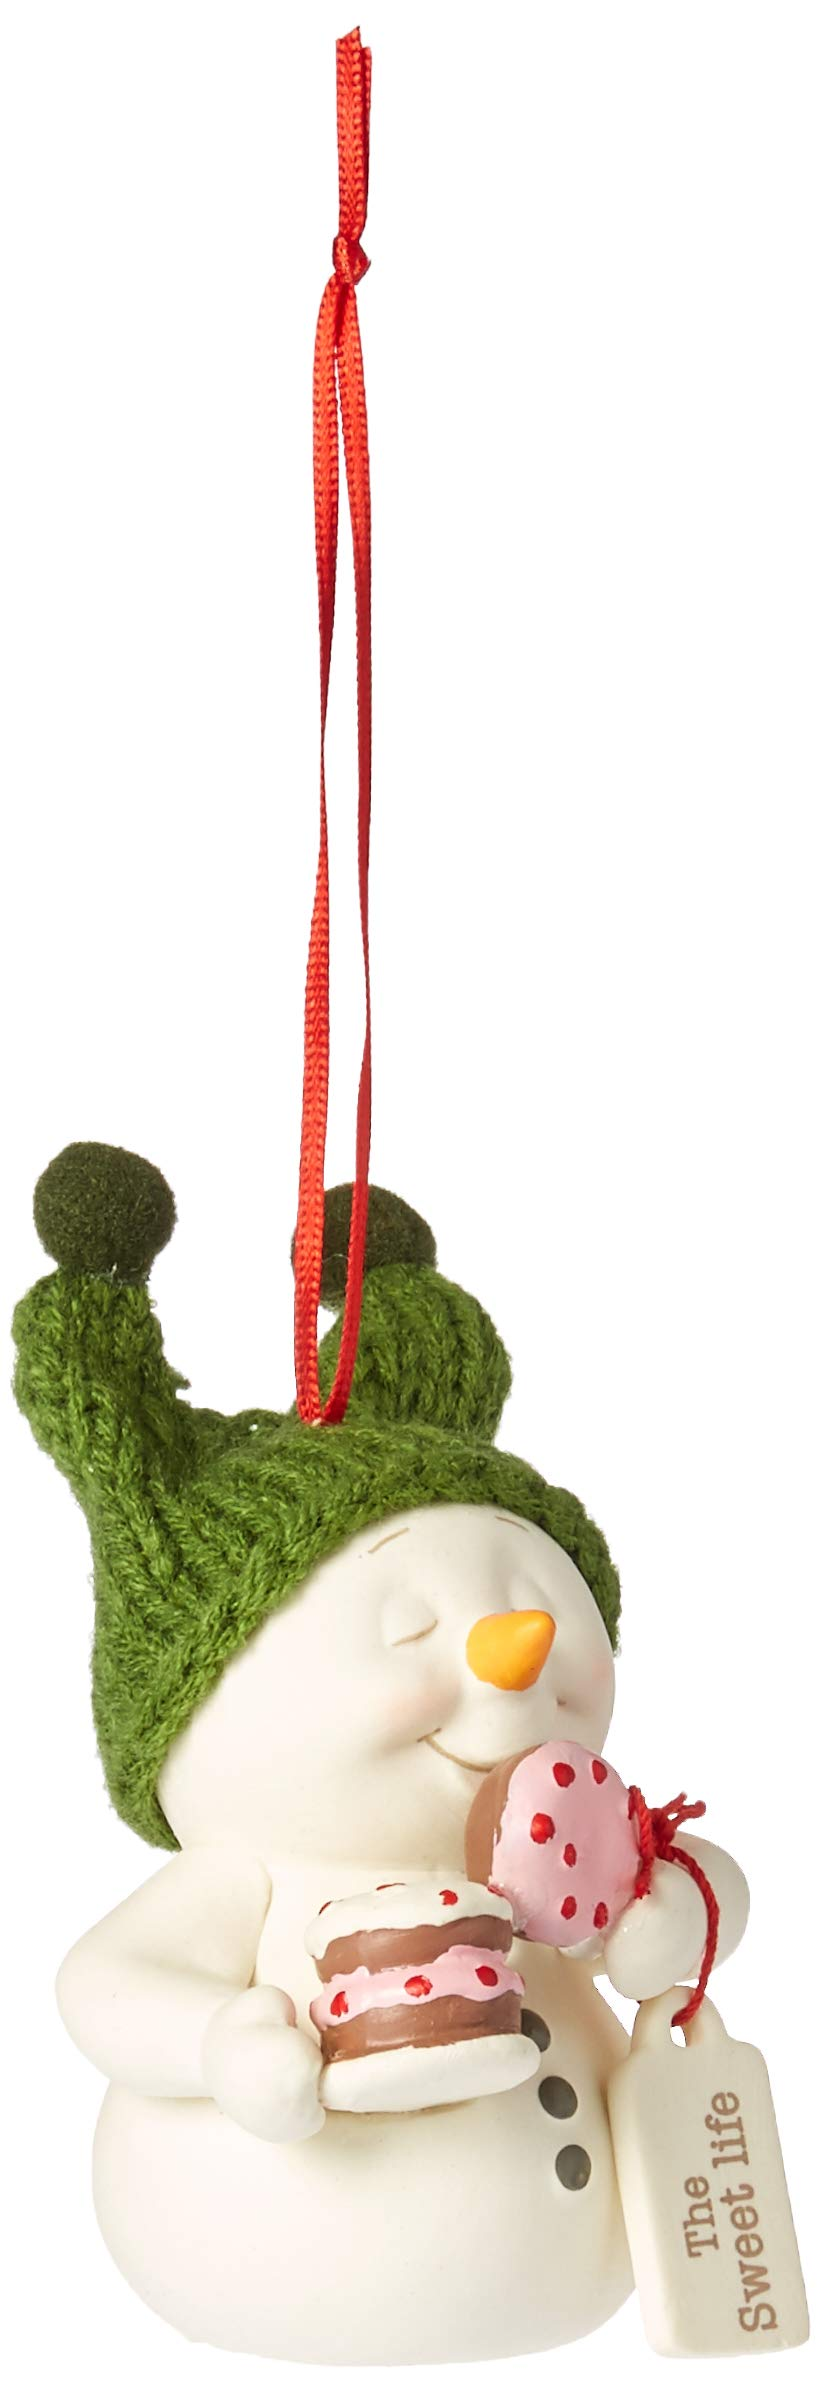 Its Mine Ornament 3 Department 56 Snowpinions Bisque Porcelain I Licked It